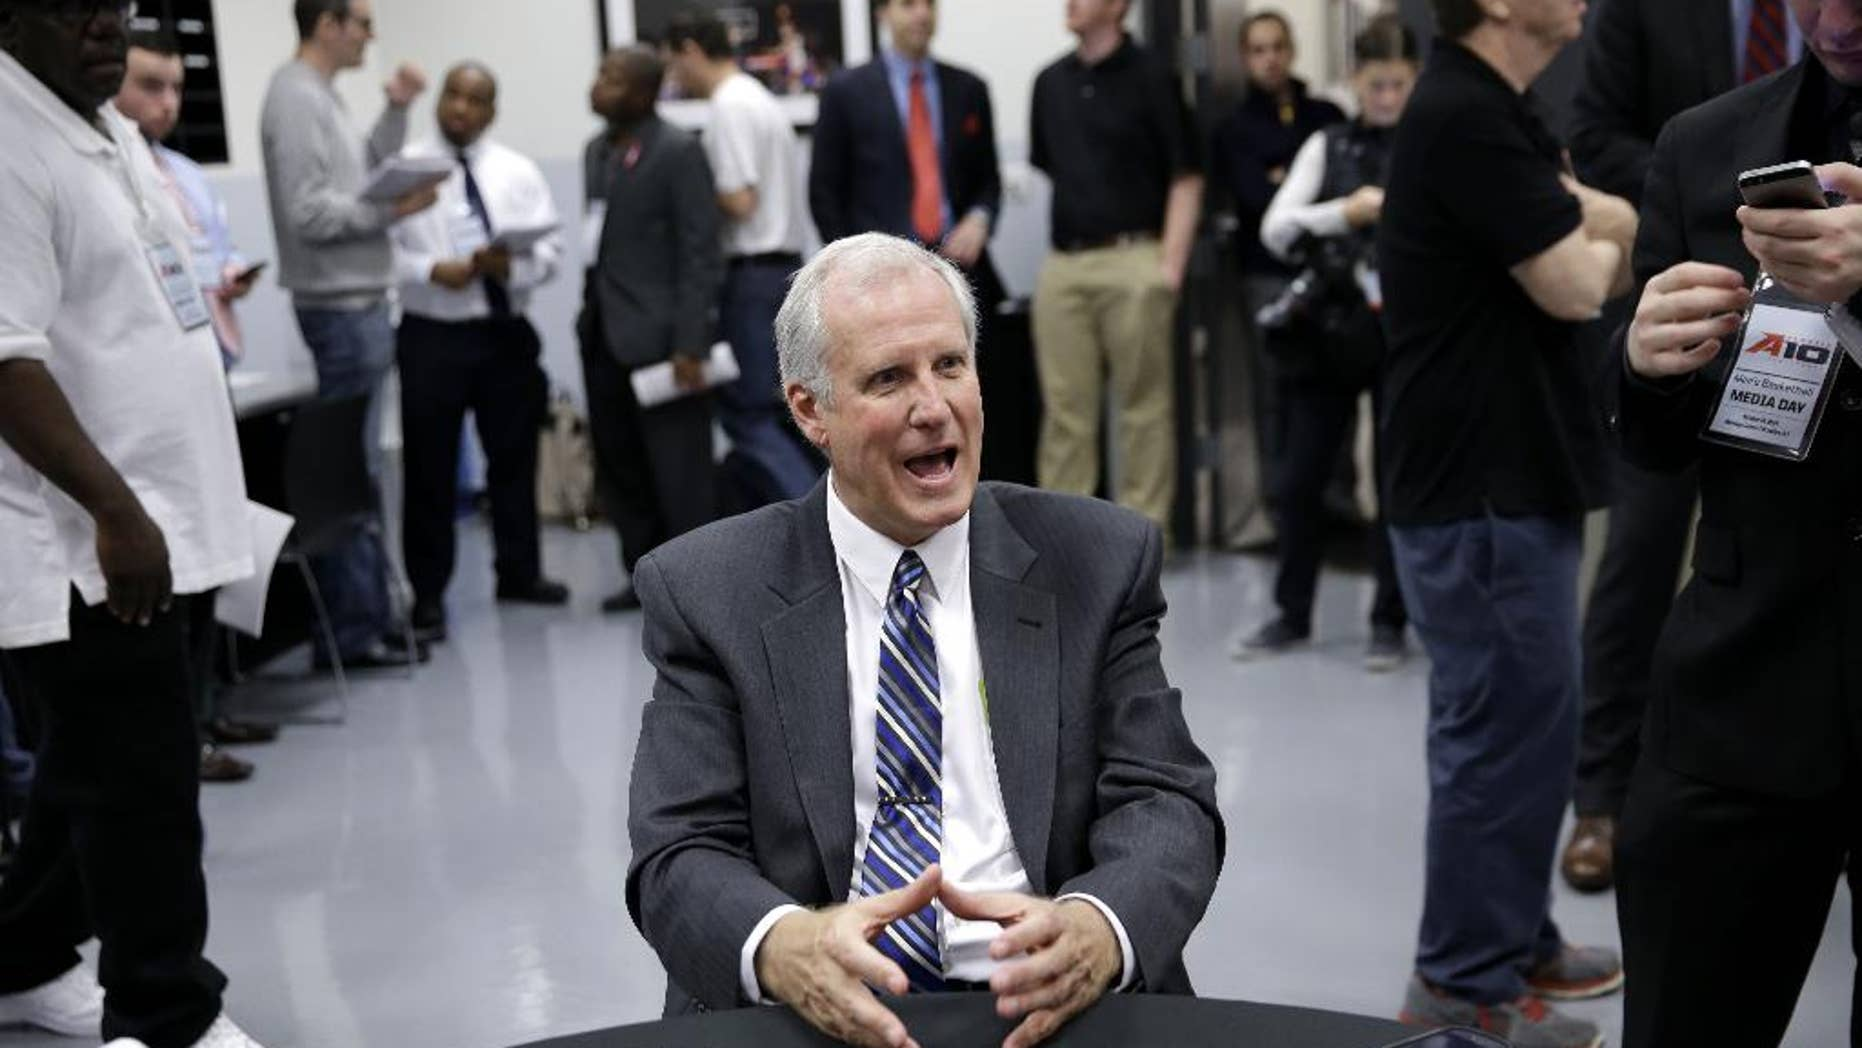 FILE - In this Oct. 14, 2014, file photo, Saint Louis men's NCAA college basketball head coach Jim Crews talks to reporters during the Atlantic 10 media day in New York. Saint Louis has been to the NCAA tournament a school-record three straight seasons, but a fourth will be tough with five new starters. (AP Photo/Seth Wenig, File)